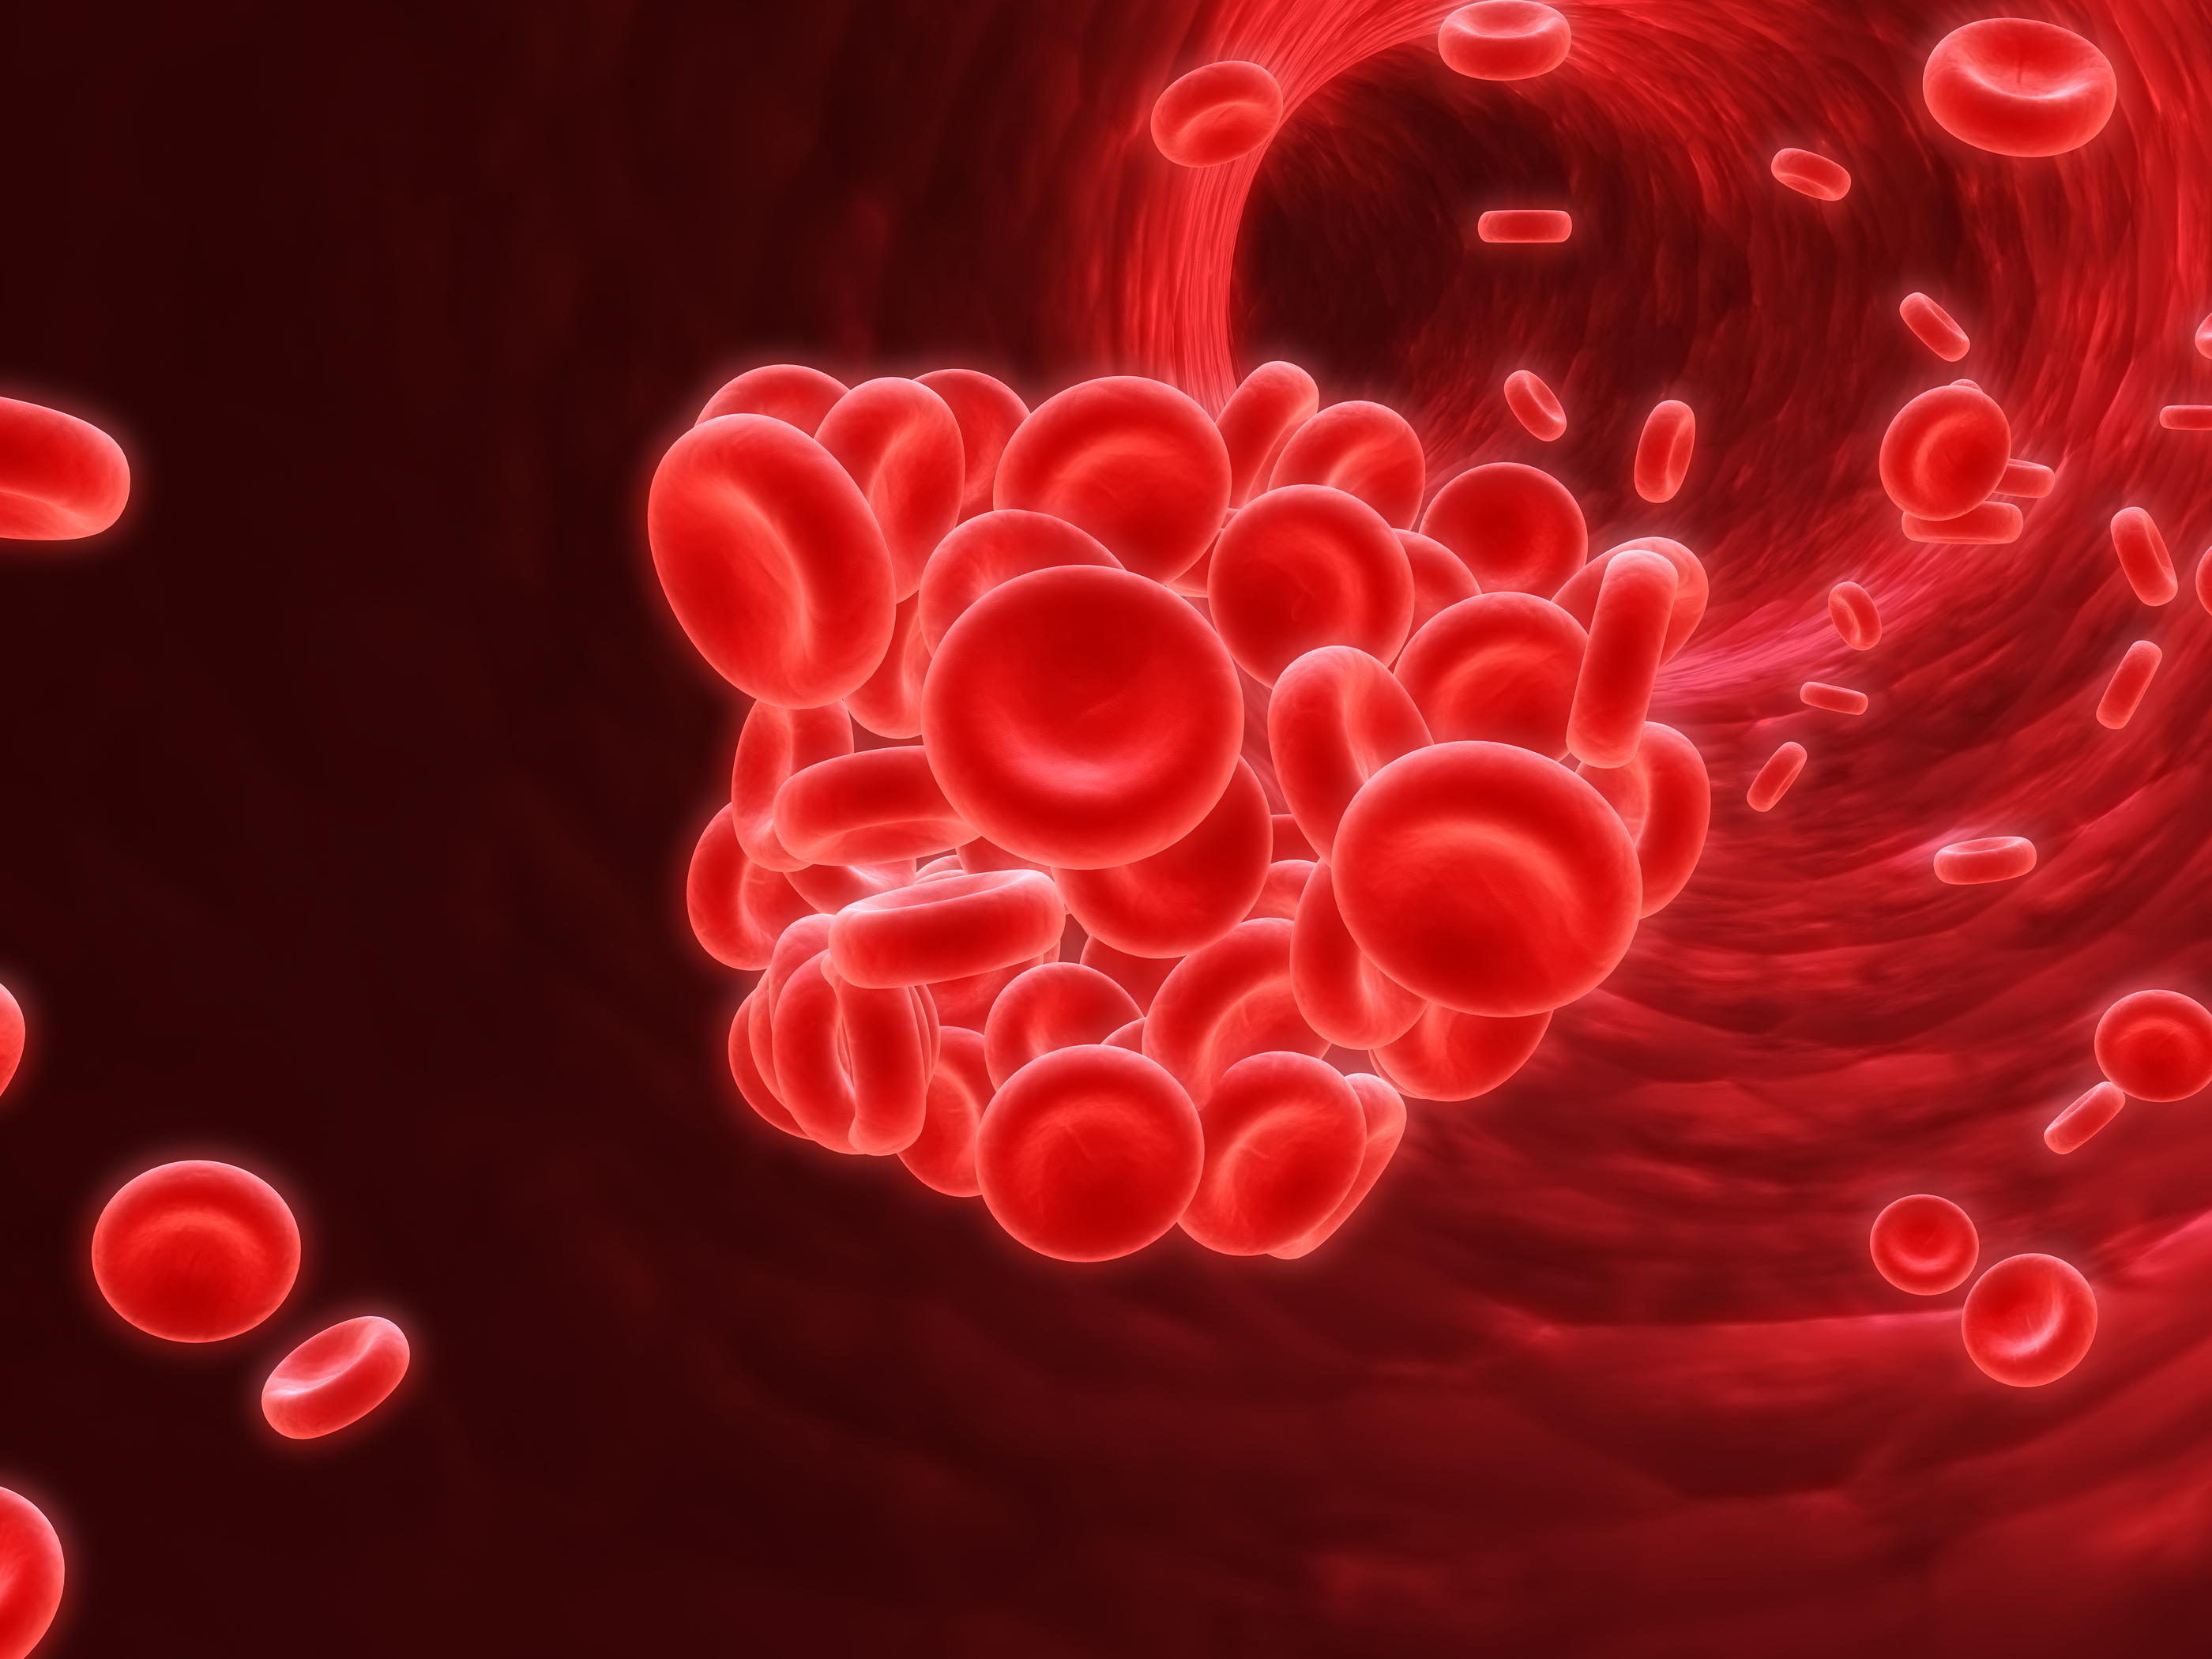 Hidden Cancer Rarely Causes Out Of The Blue Clots In The Bloodstream Harvard Health Blog Harvard Health Publishing